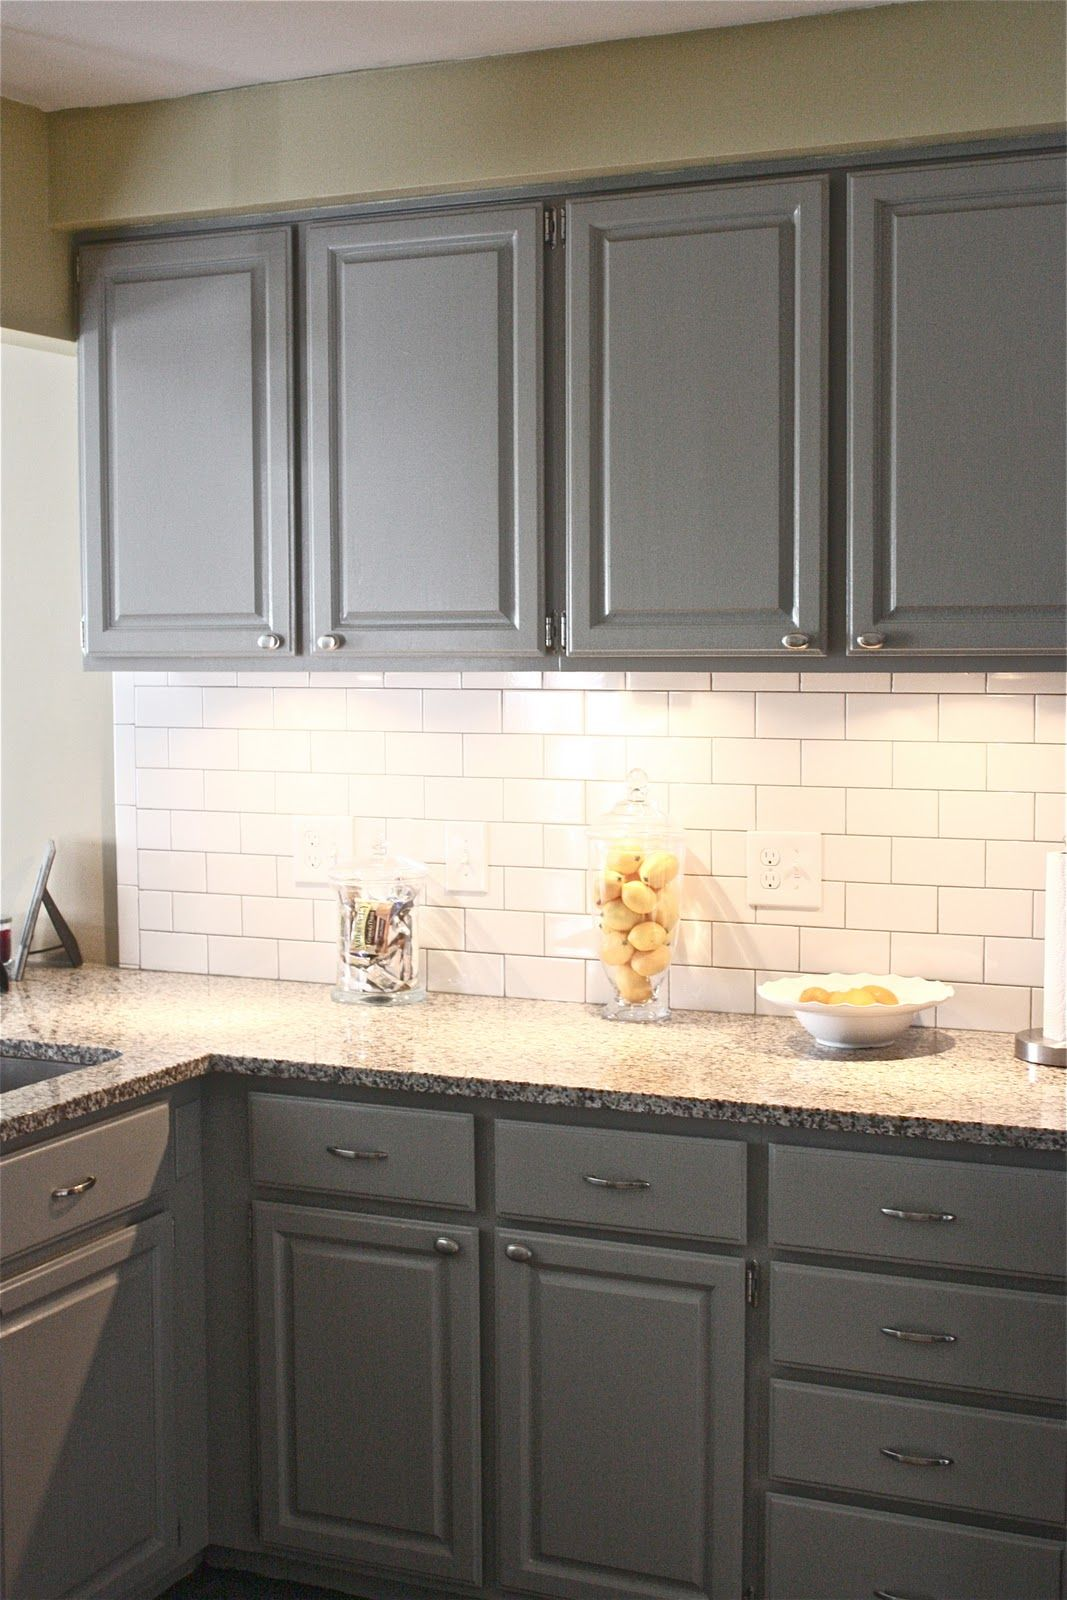 Gray cabinets with greenputty walls not sure what i think